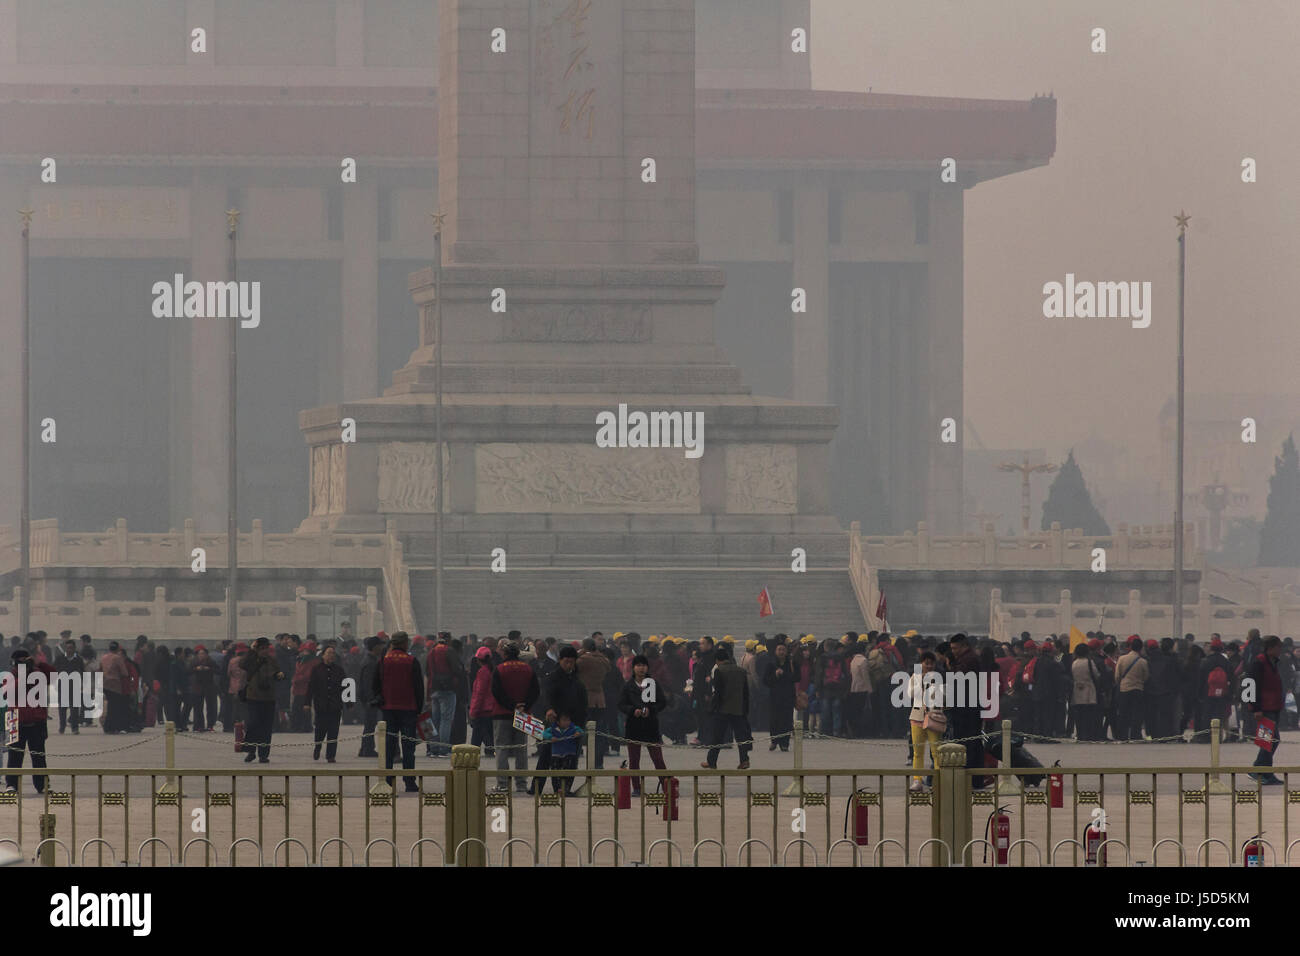 BEIJING, CHINA-26th MARCH 2014:- The iconic Tianamen square best known for the protests of the 80s Stock Photo